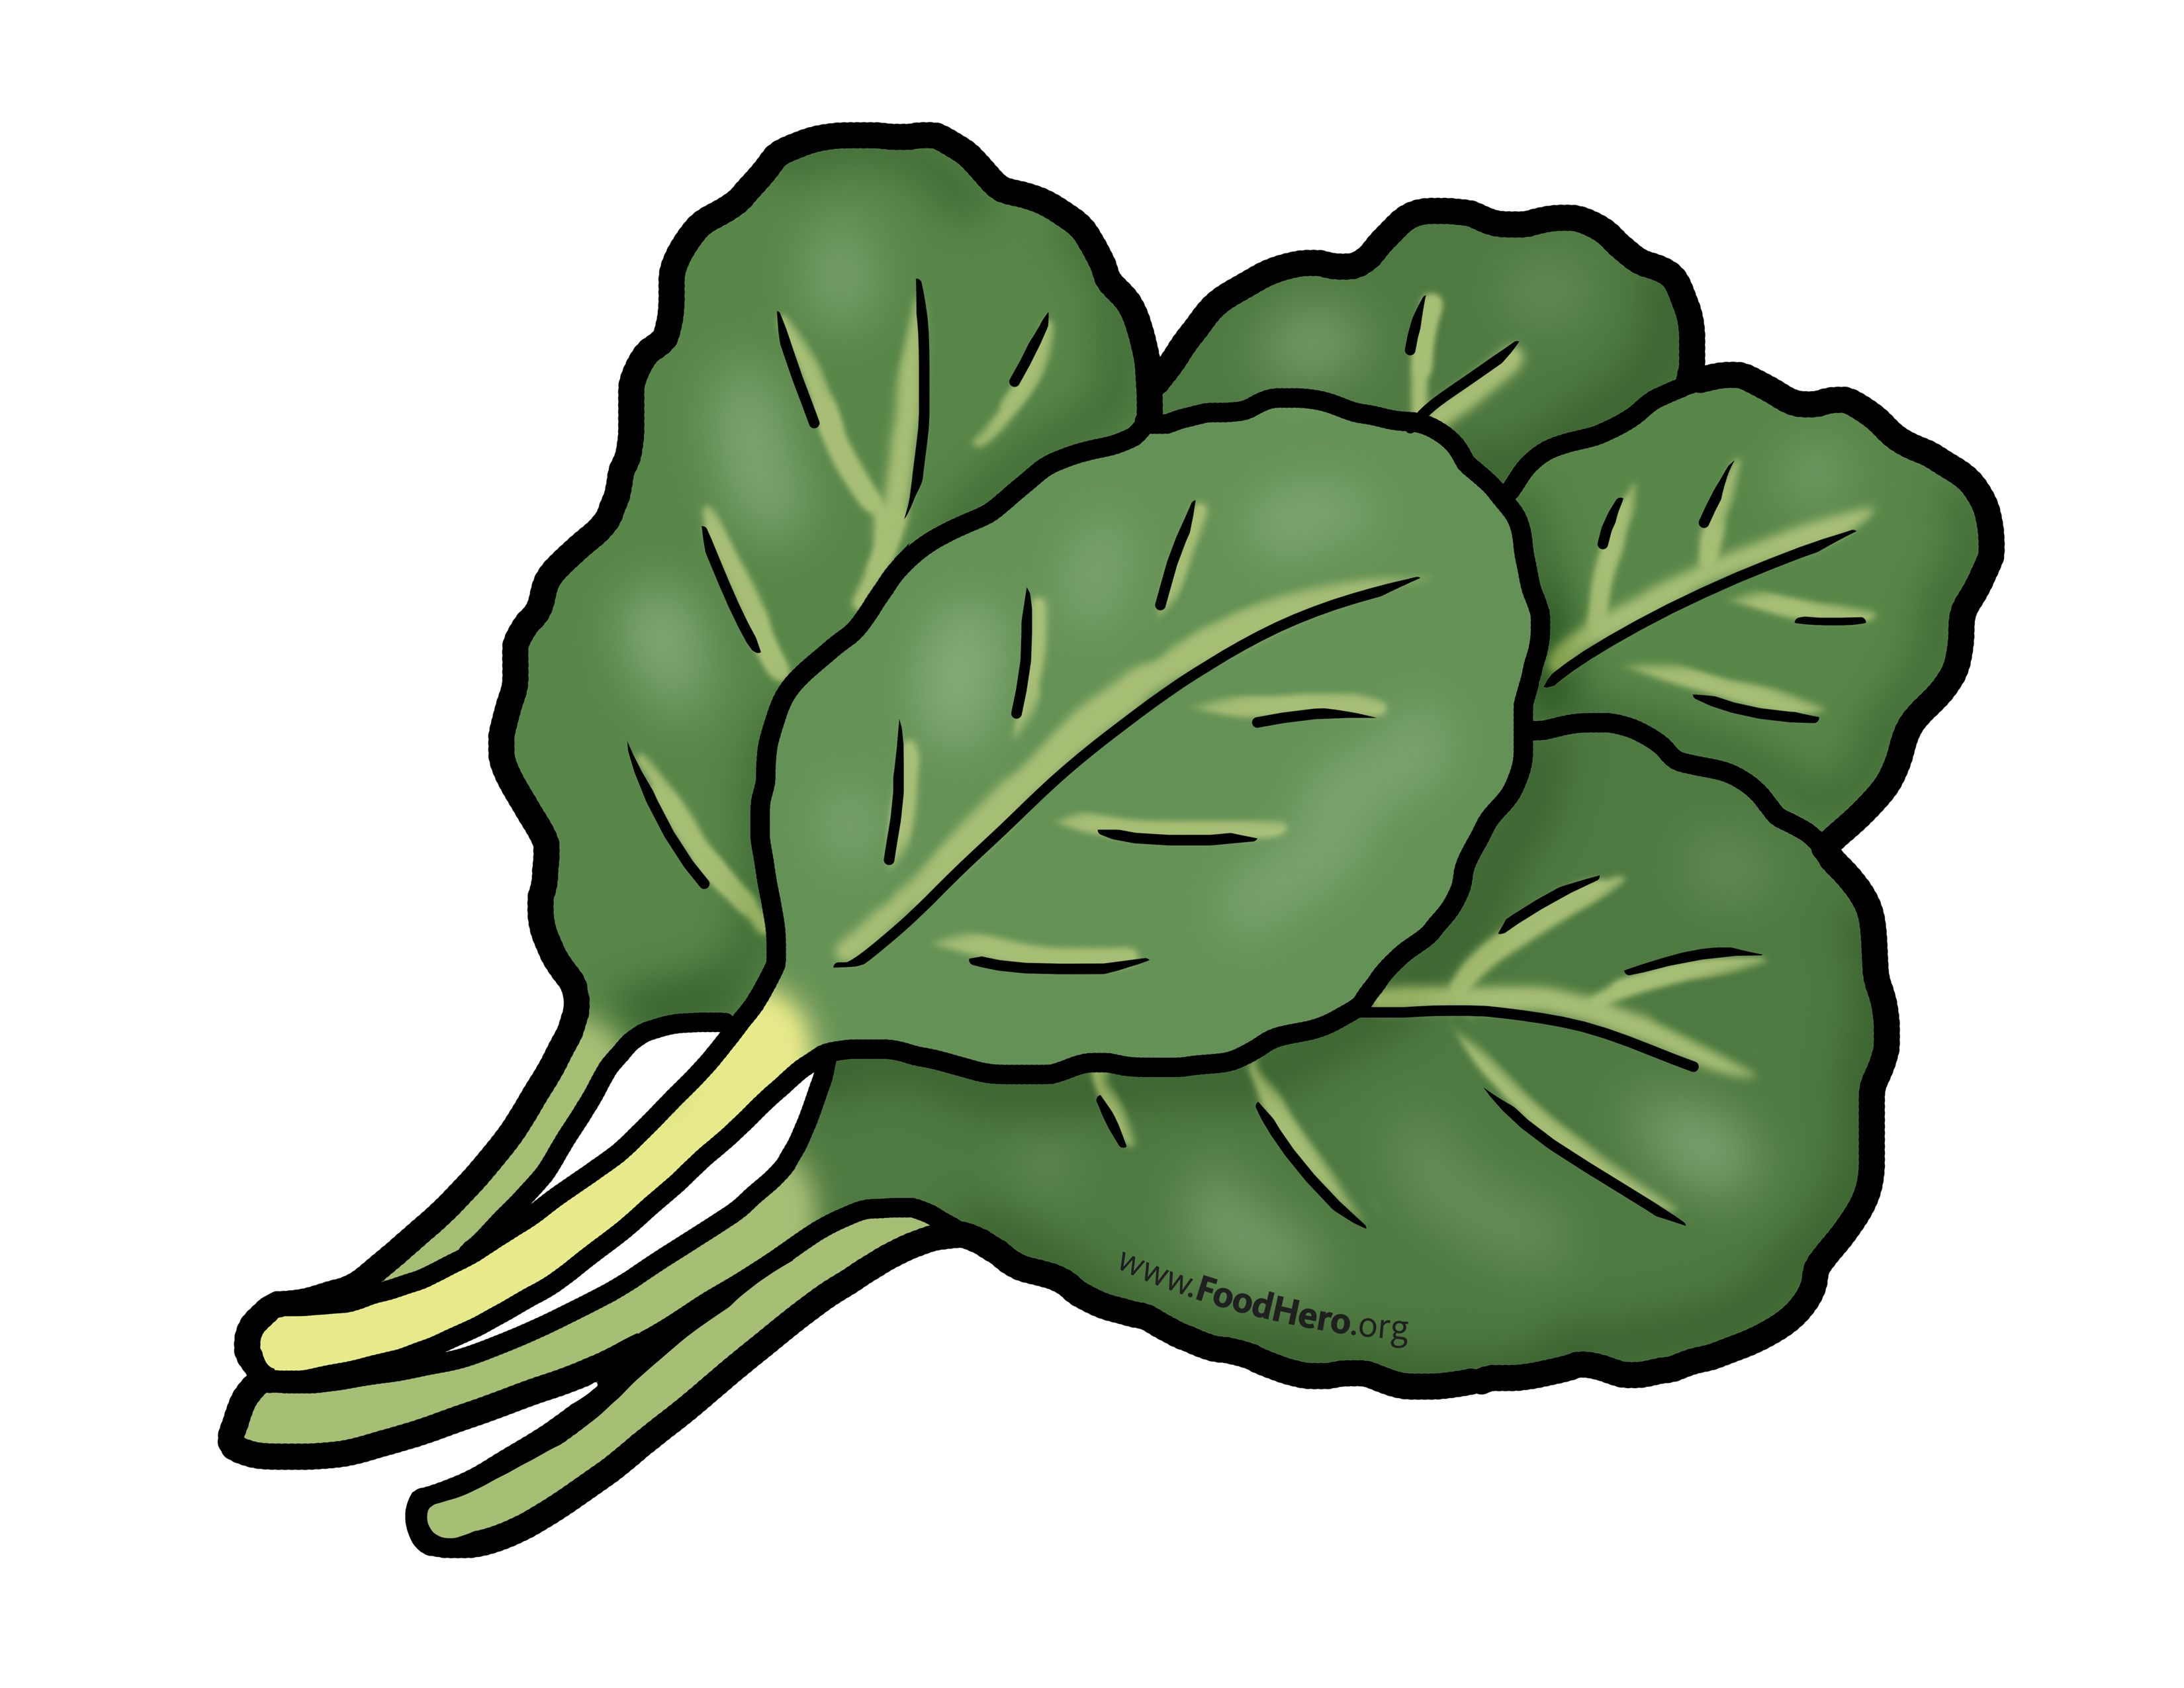 Clipart vegetables green vegetable. Chollard greens illustration foodhero